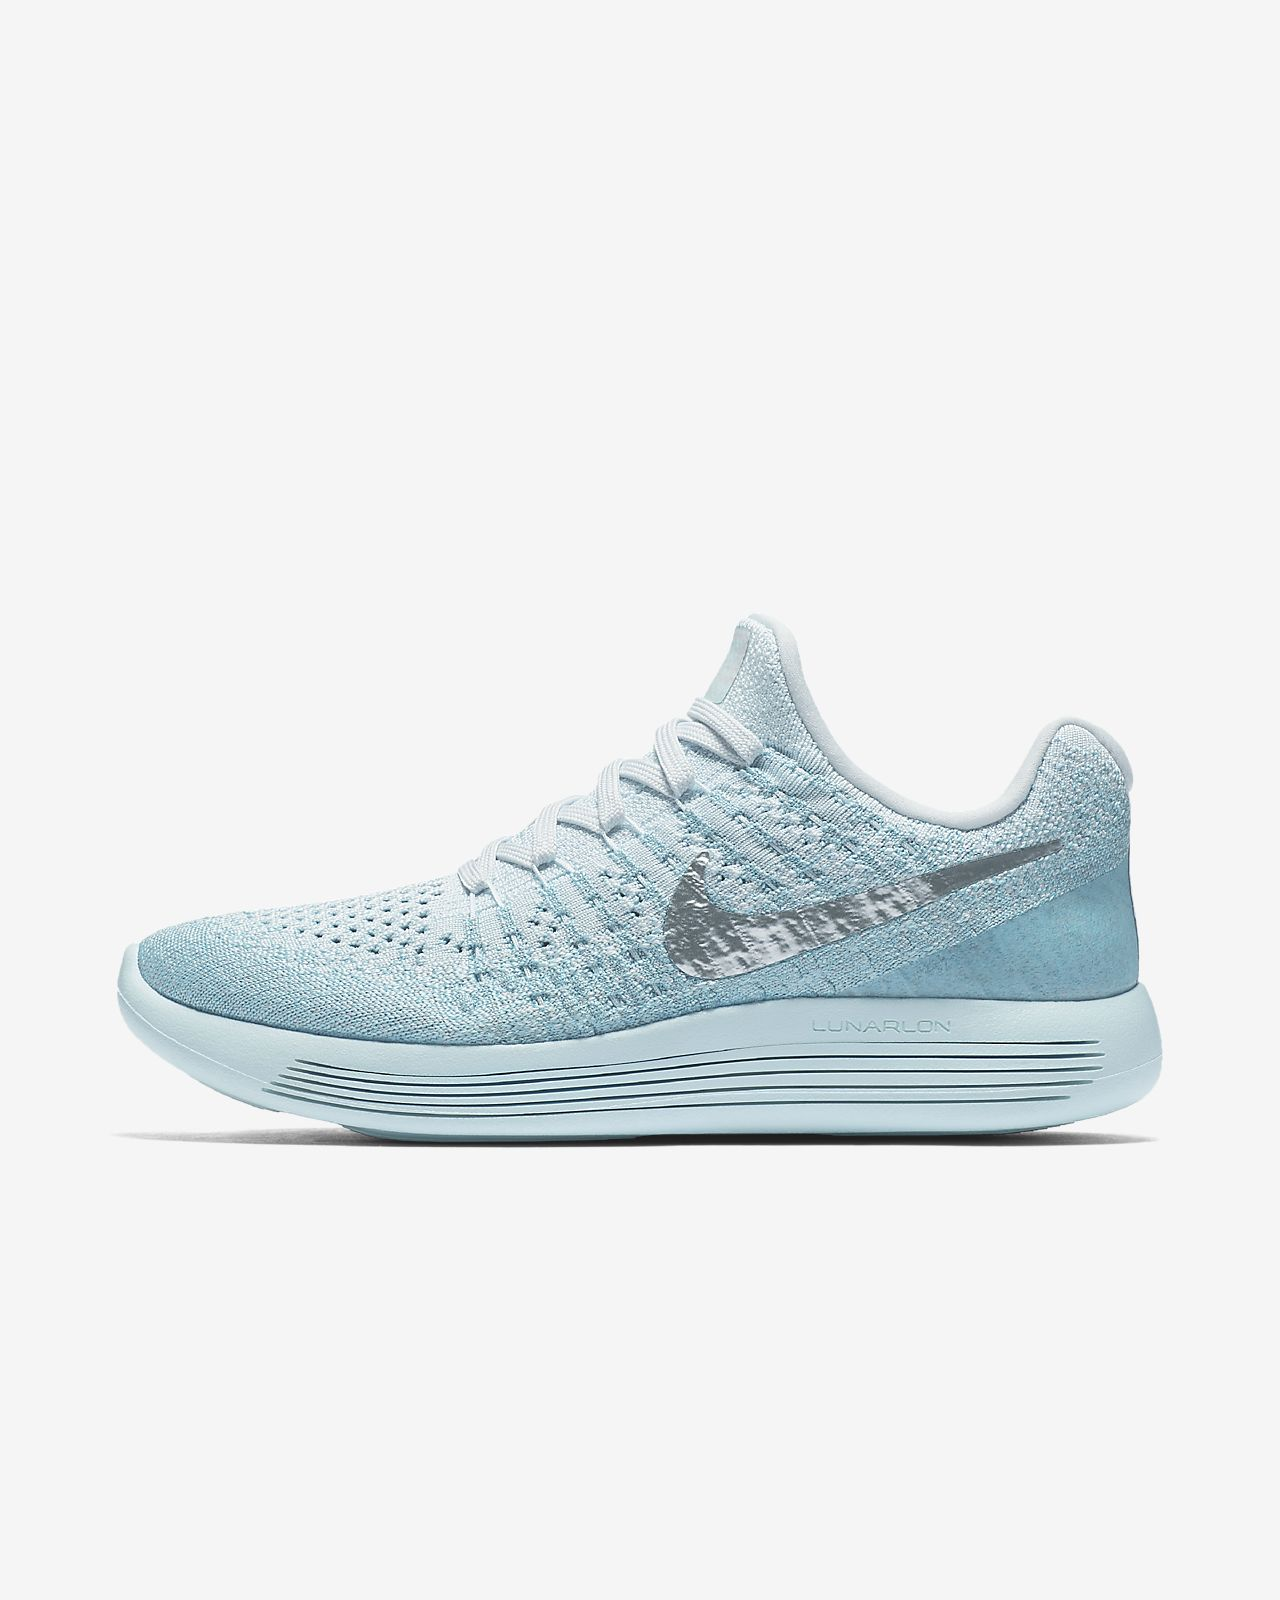 ... Nike LunarEpic Low Flyknit 2 Women's Running Shoe